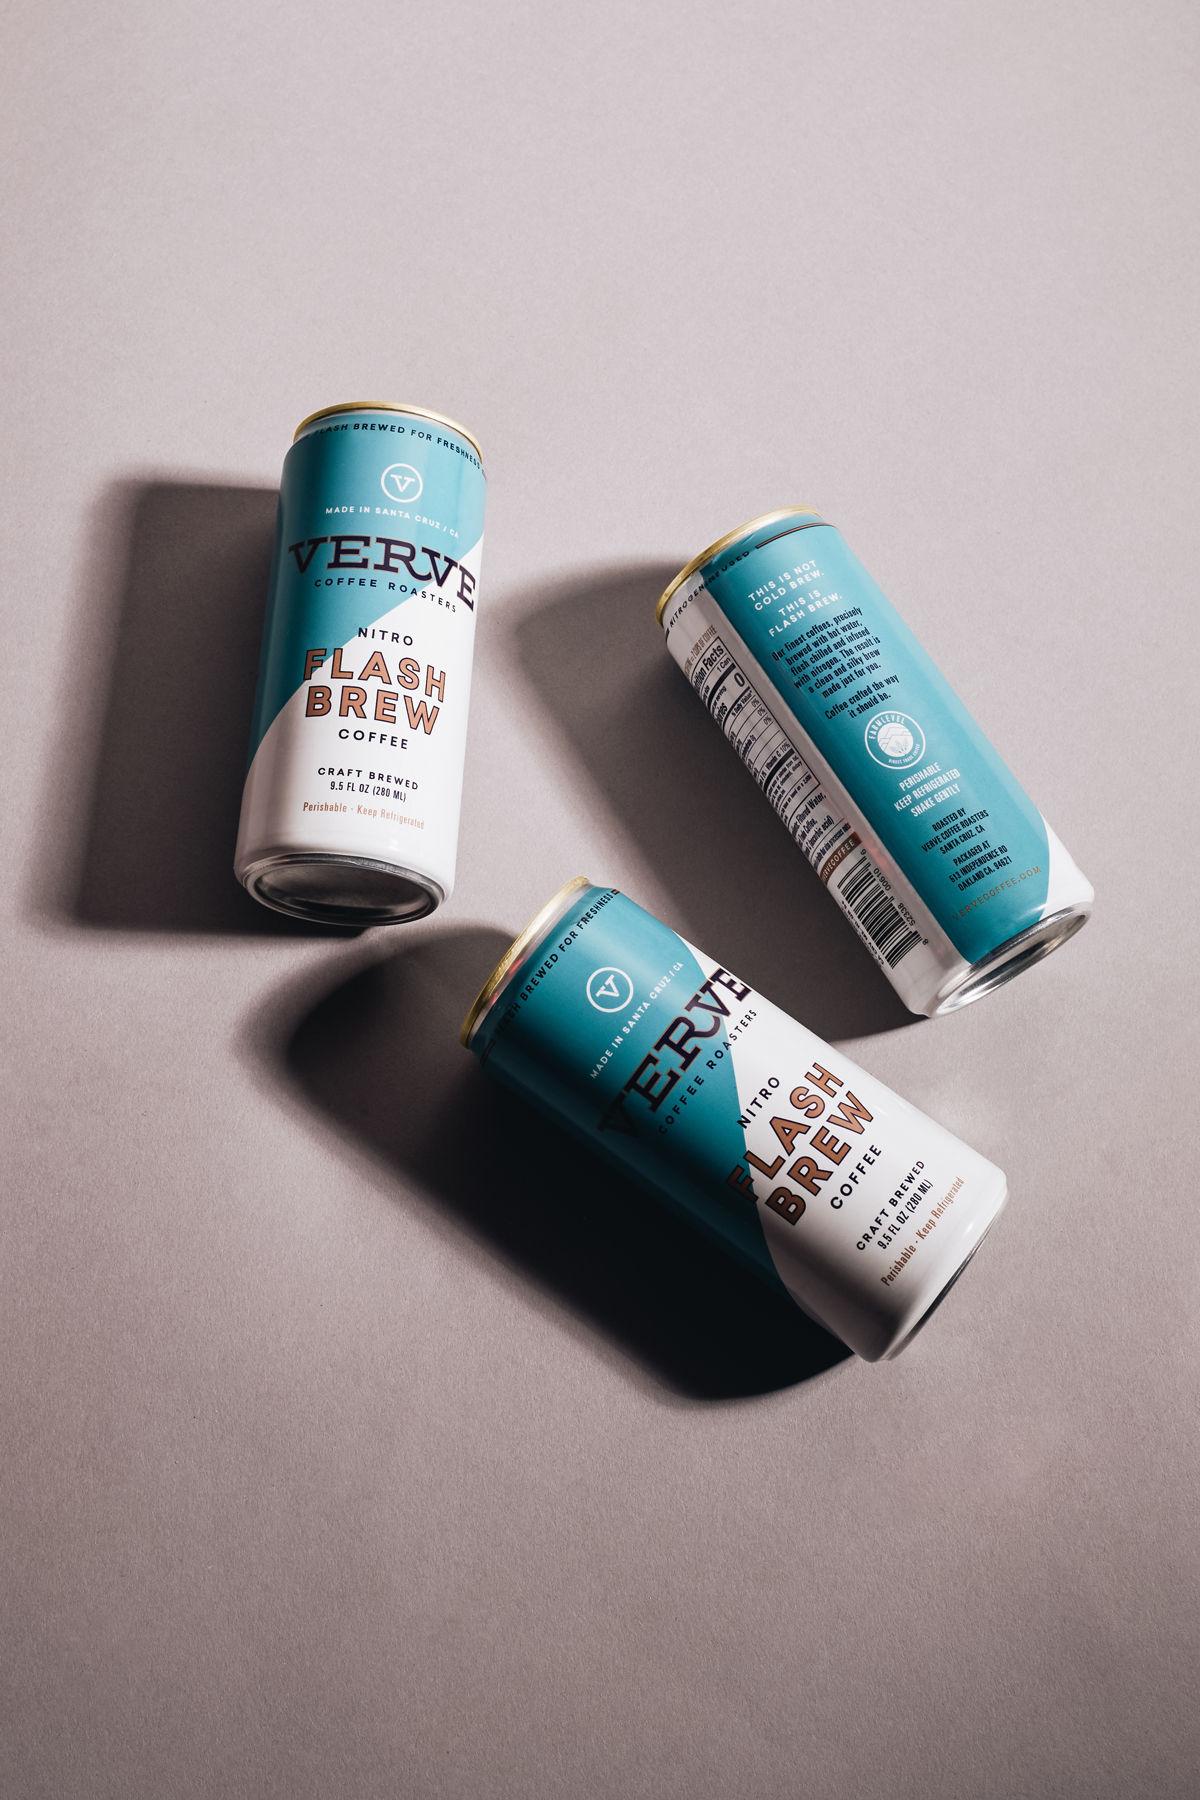 PRECISELY BREWED - The coffee is brewed hot through a precise process in an oxygen-free environment with state-of-the-art craft brewing equipment.